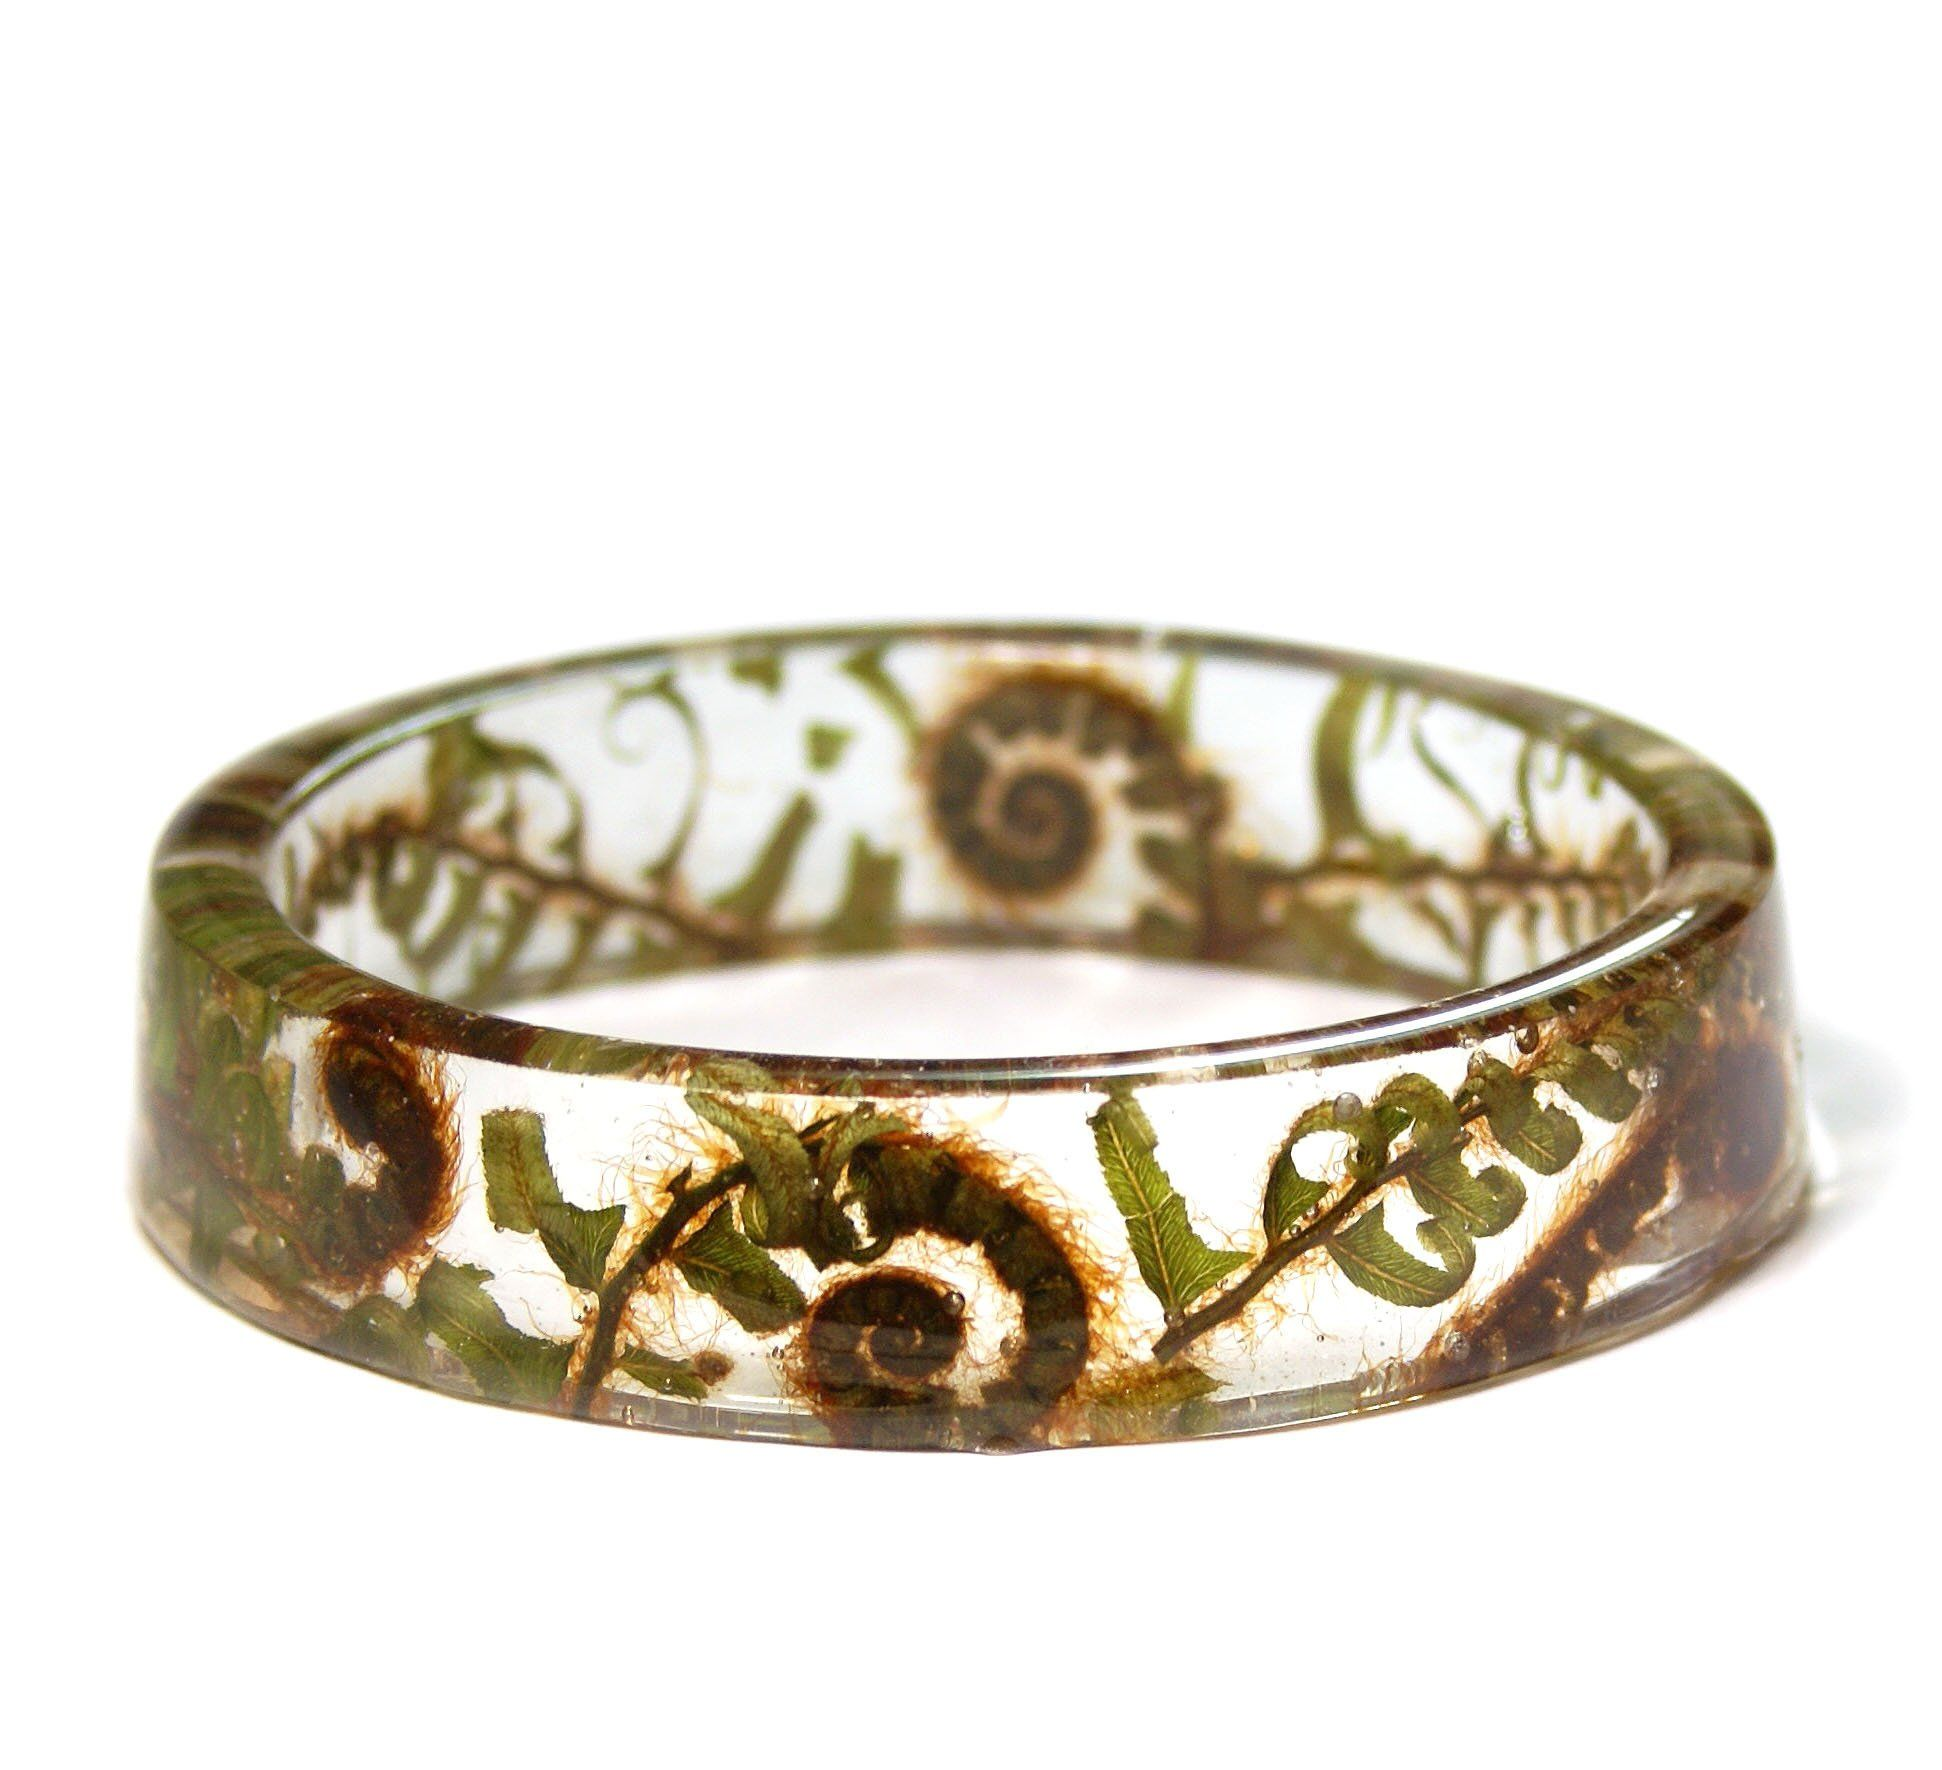 This beautiful bracelet is made with genuine dried